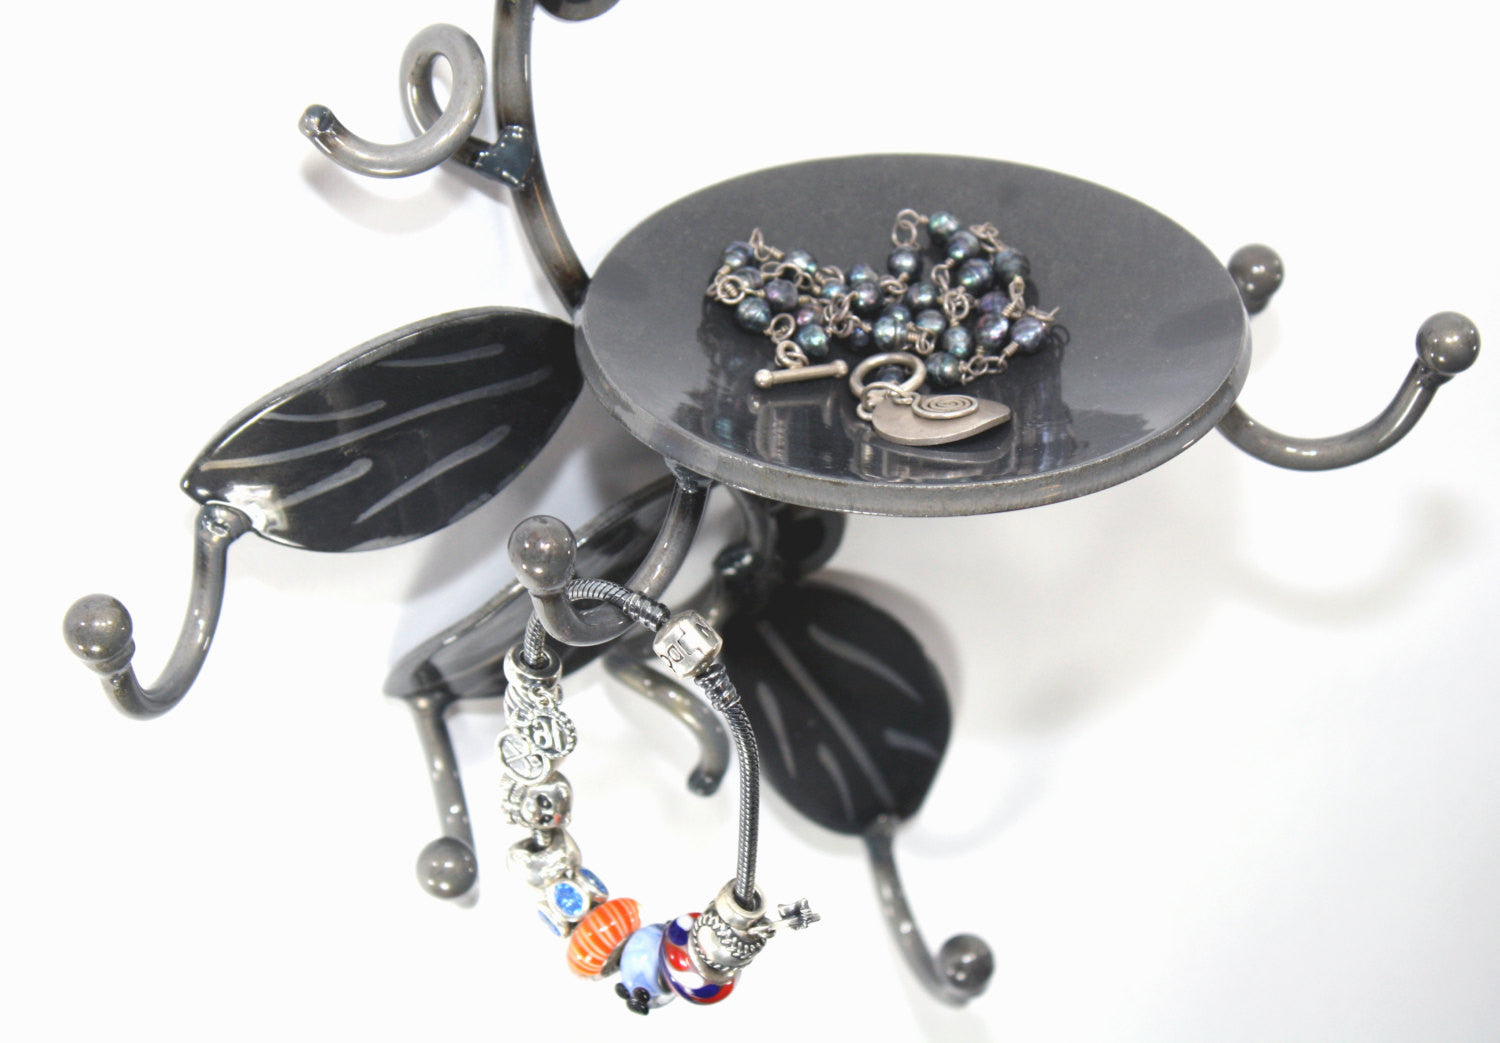 Jewelry Holder: Metal Art Vine With Small Dish And 5 Hooks For Keys, Rings, Change + And Other Small Items